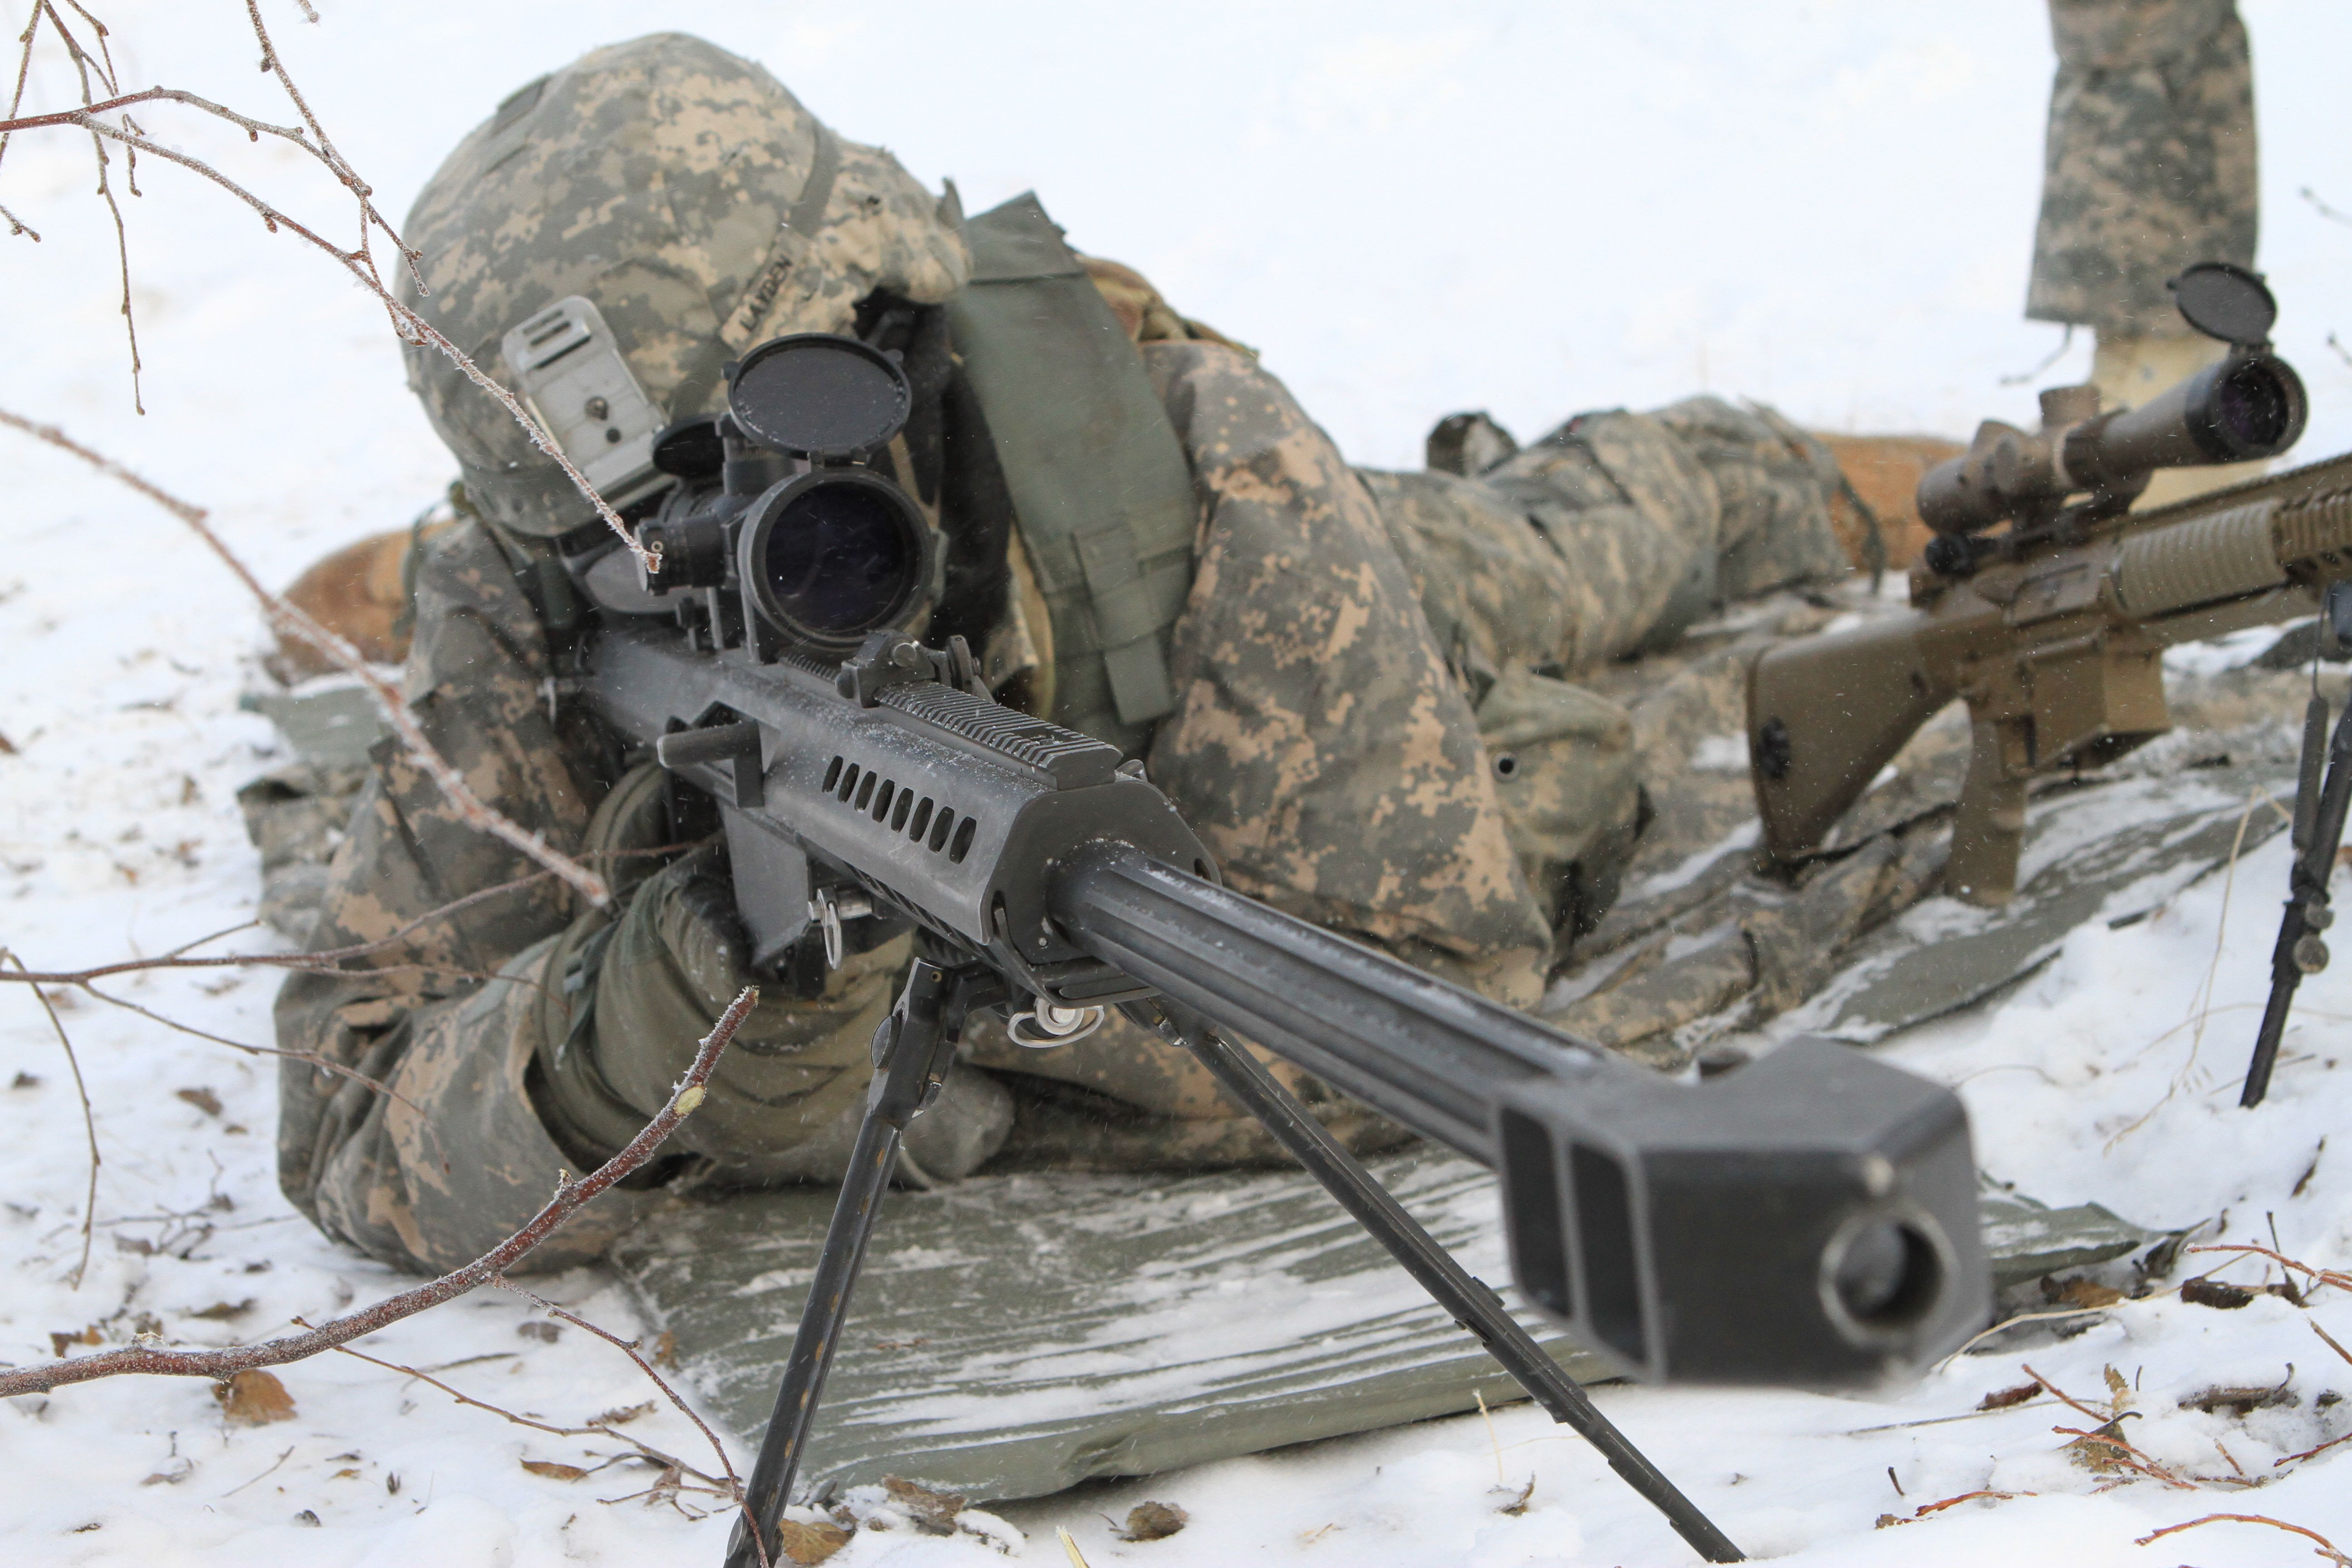 hd wallpaper the army sniper - http://69hdwallpapers/hd